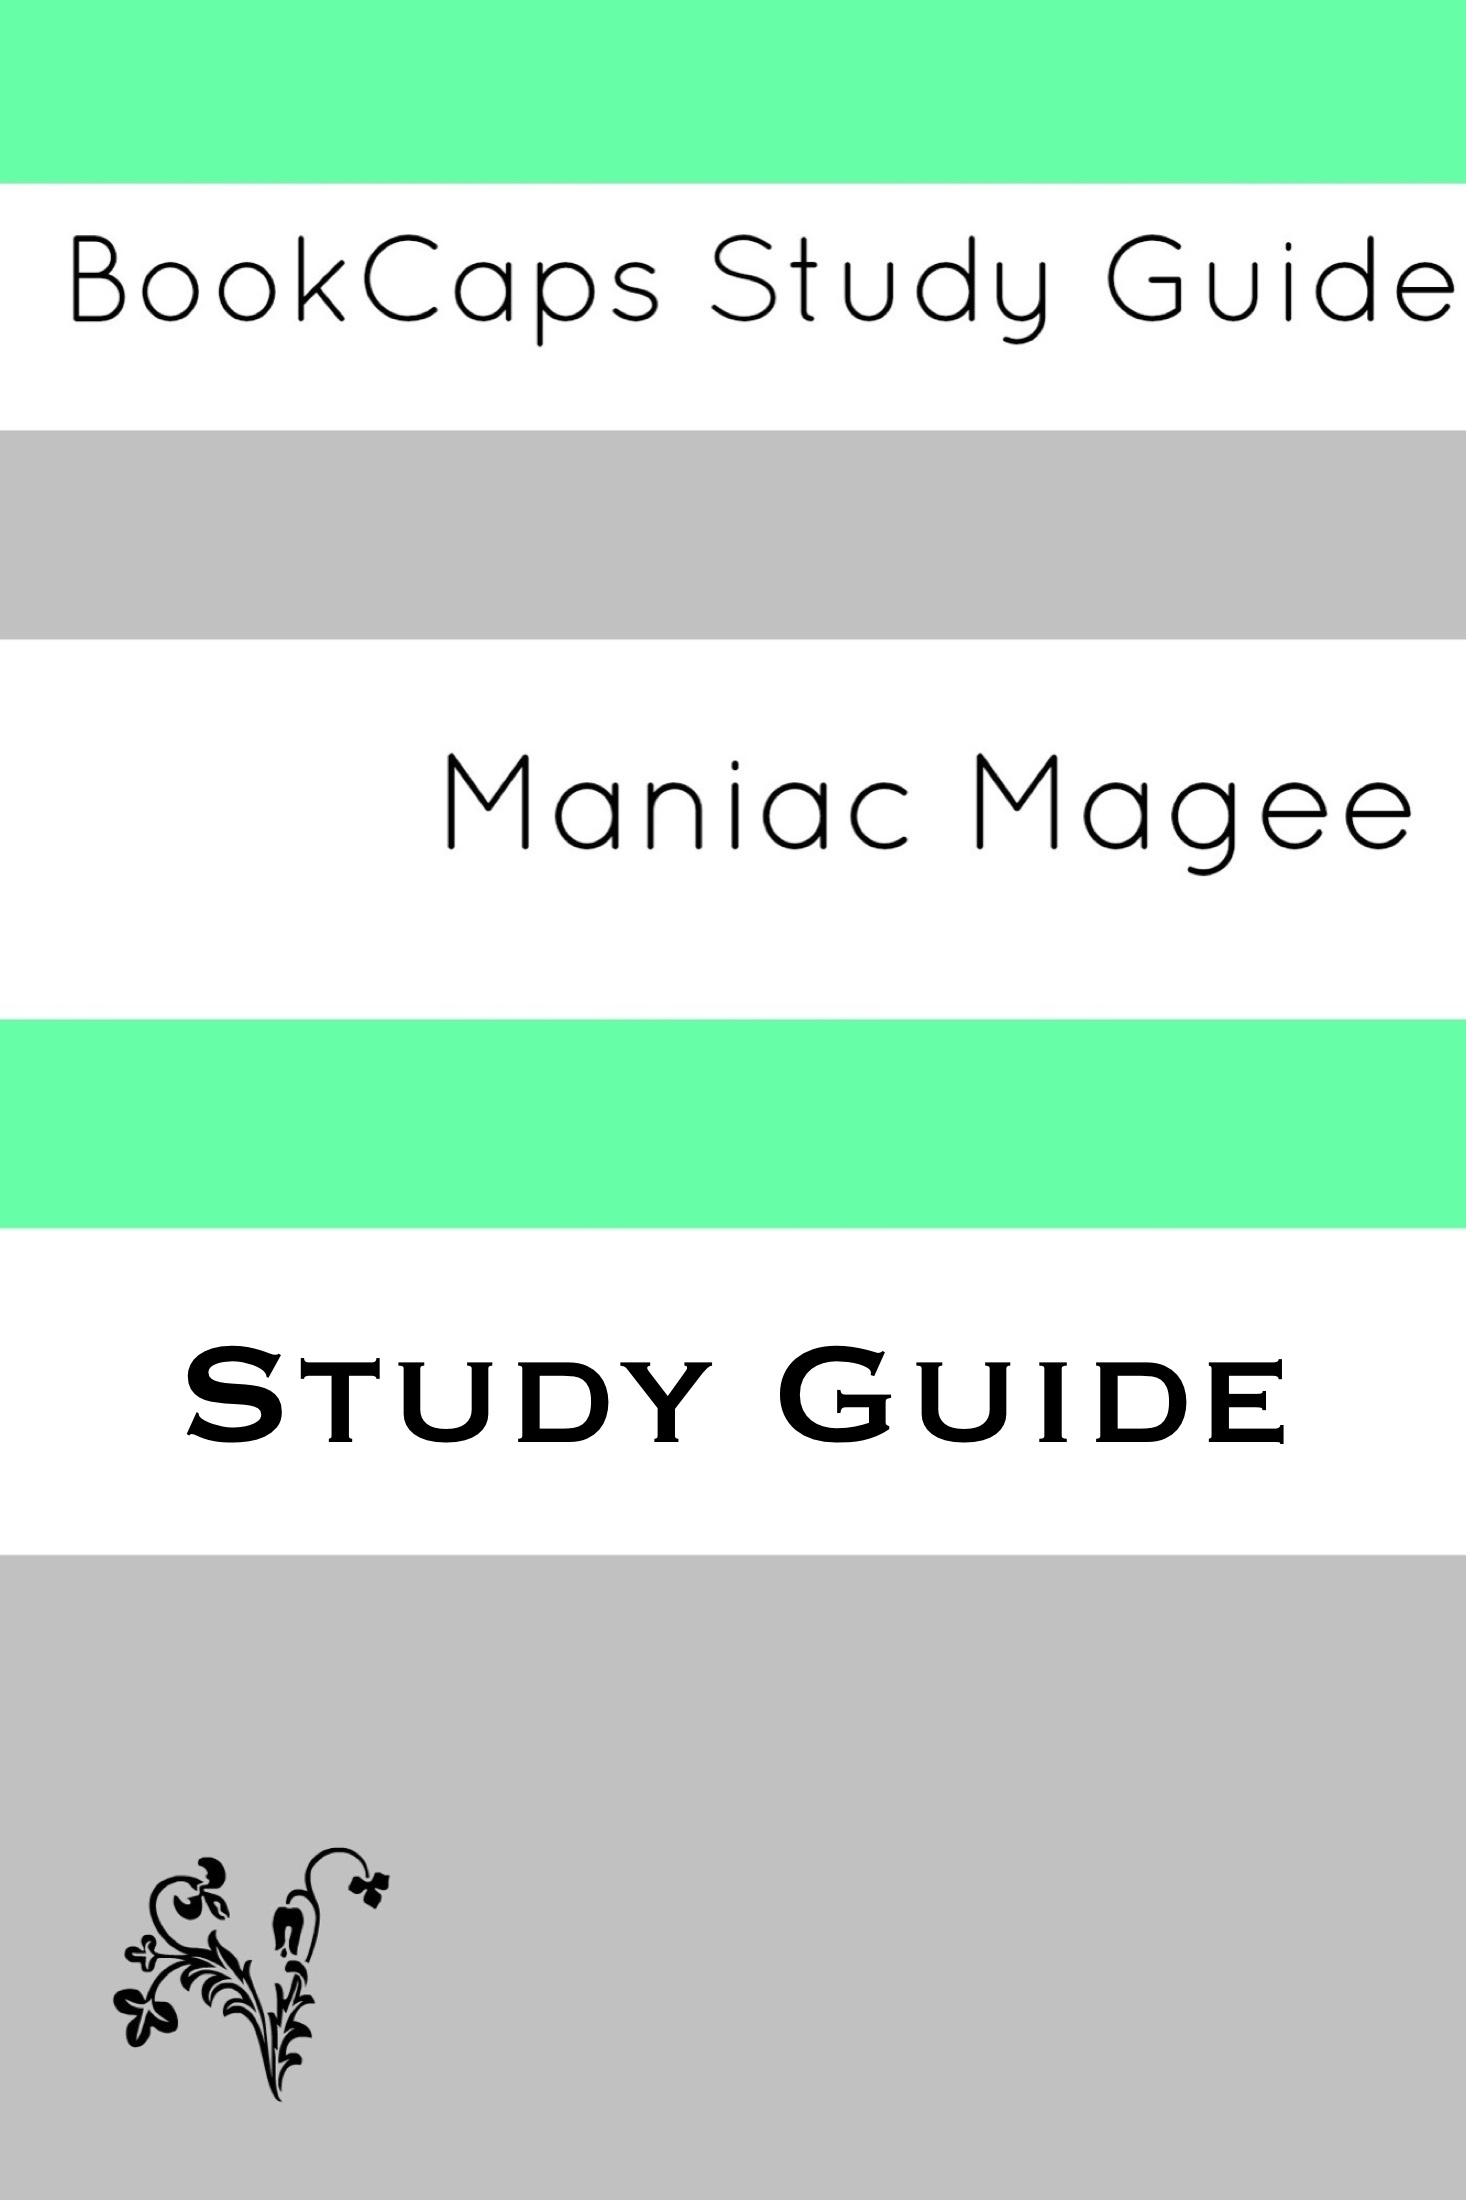 maniac magee essay << research paper service maniac magee essay